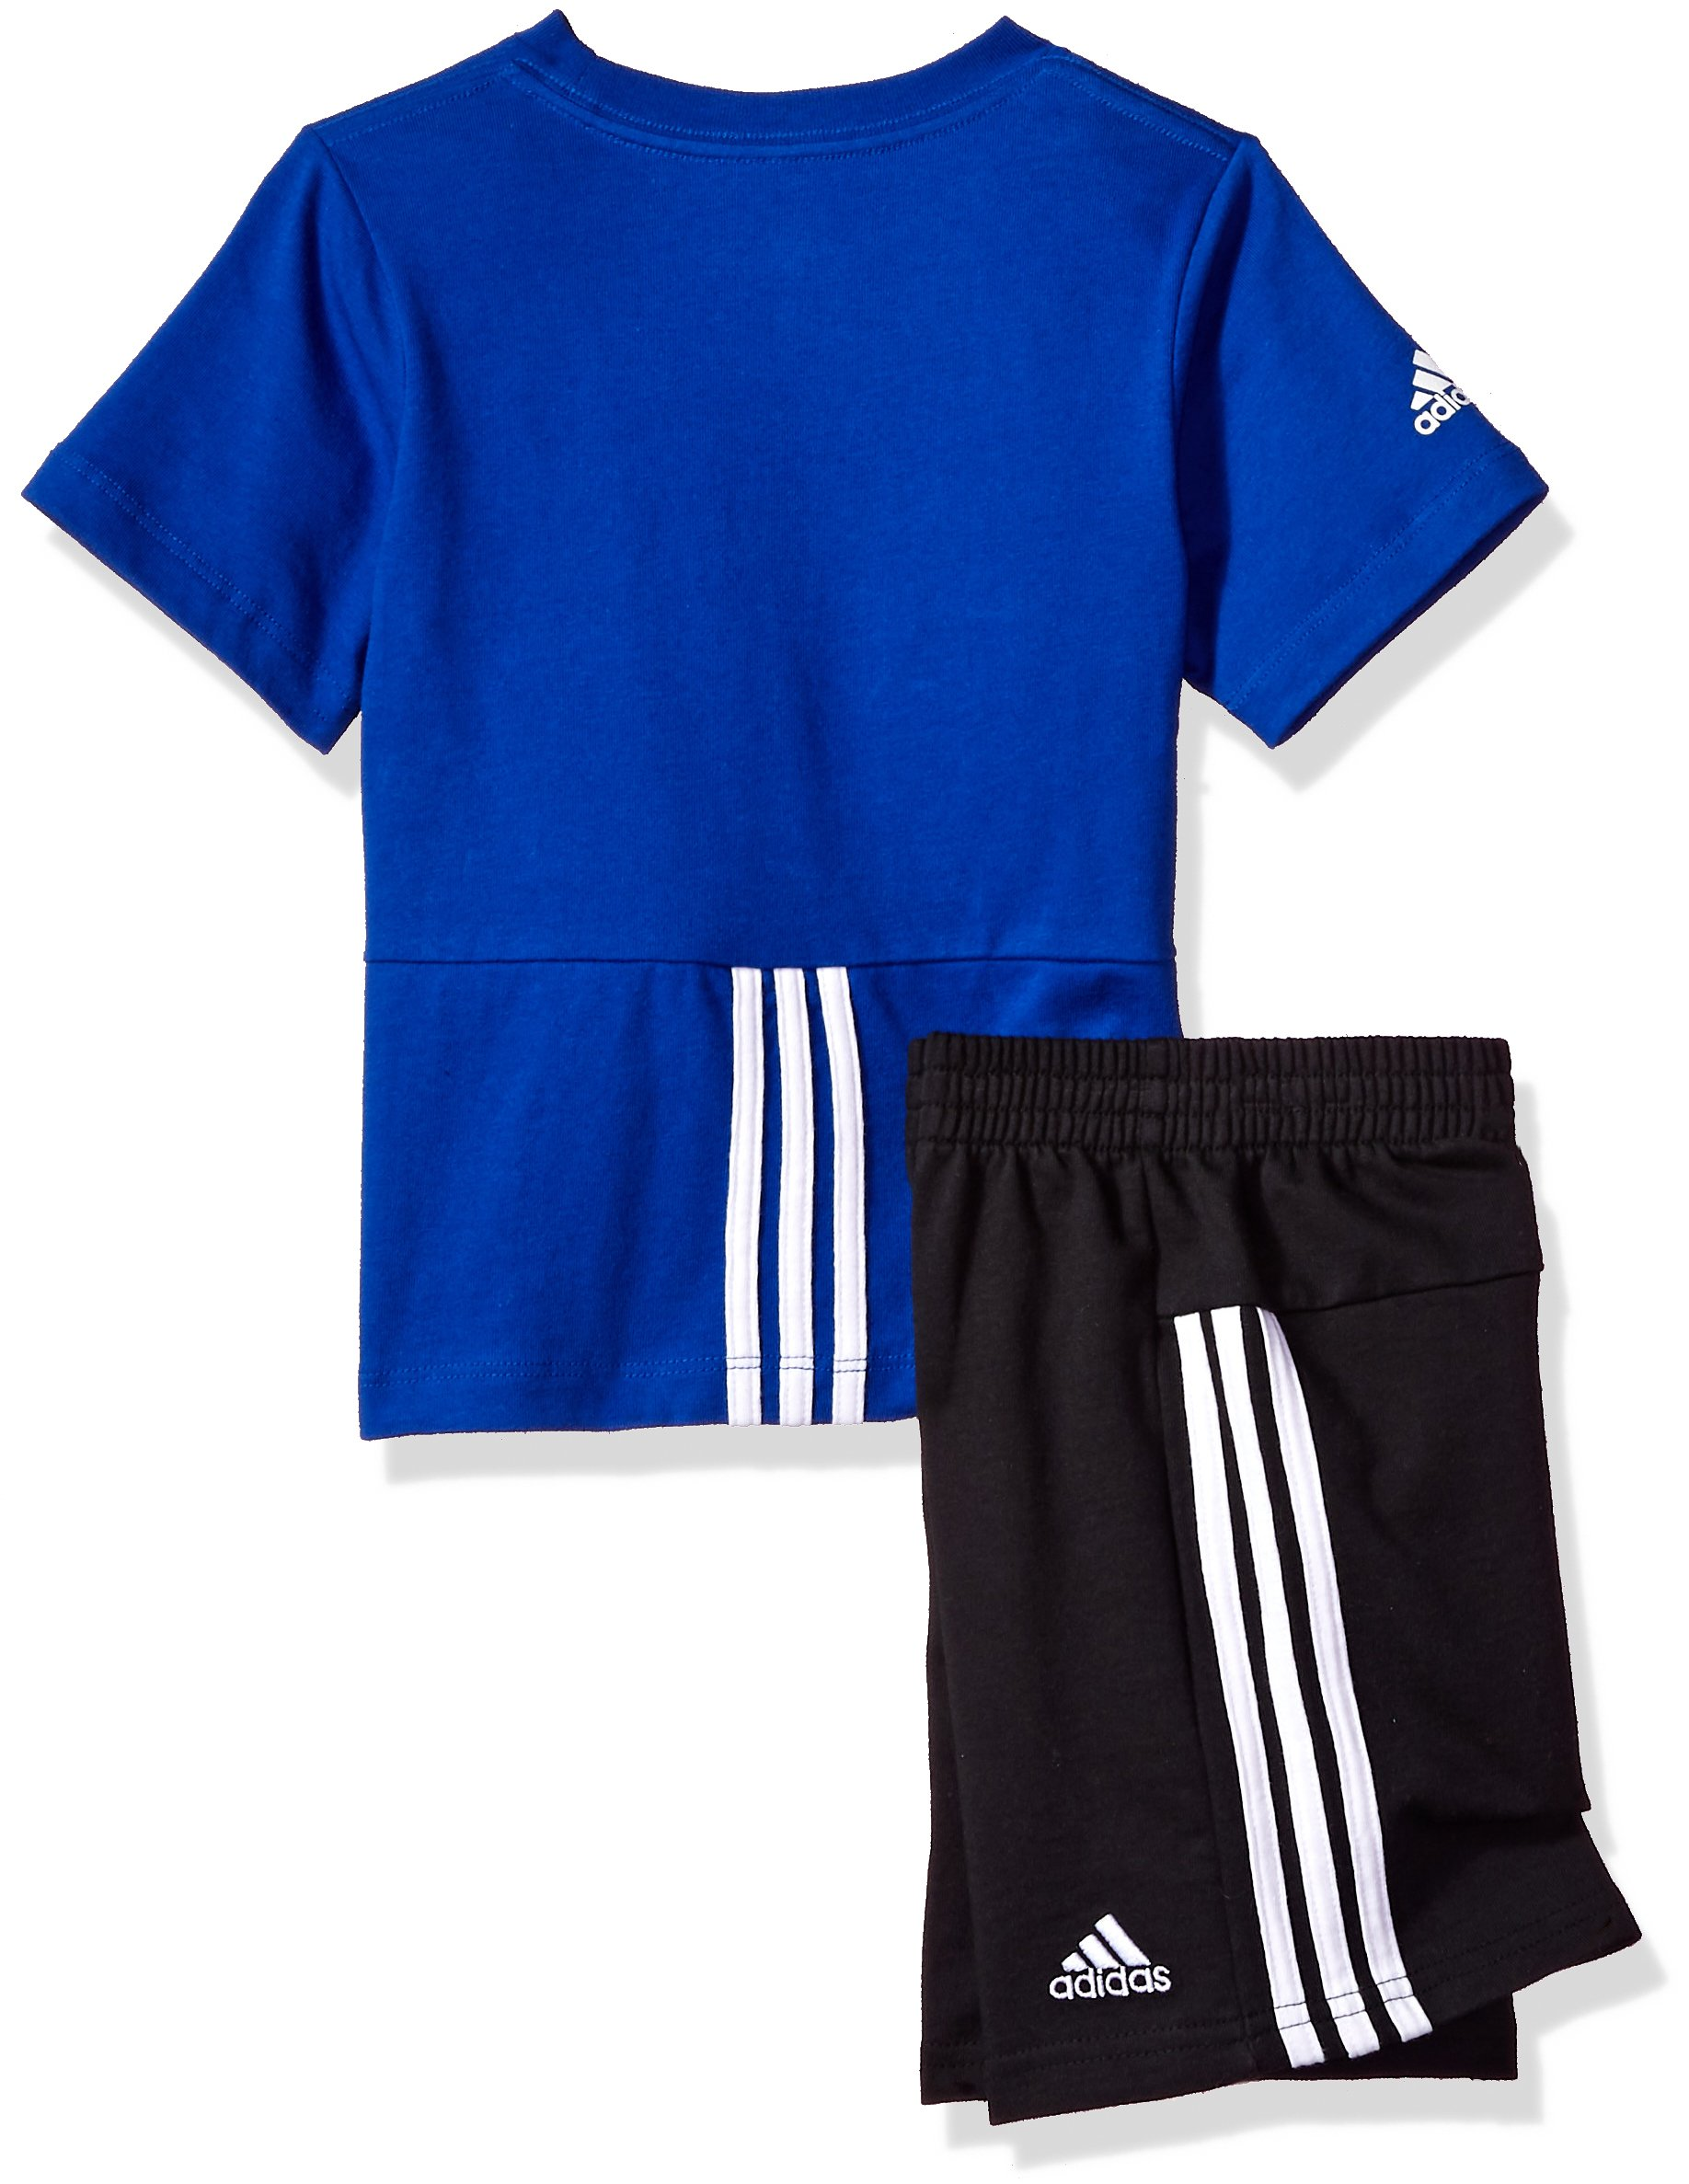 adidas Baby Boys Short Sleeve Tee and Short Set, Collegiate Royal, 18M by adidas (Image #2)